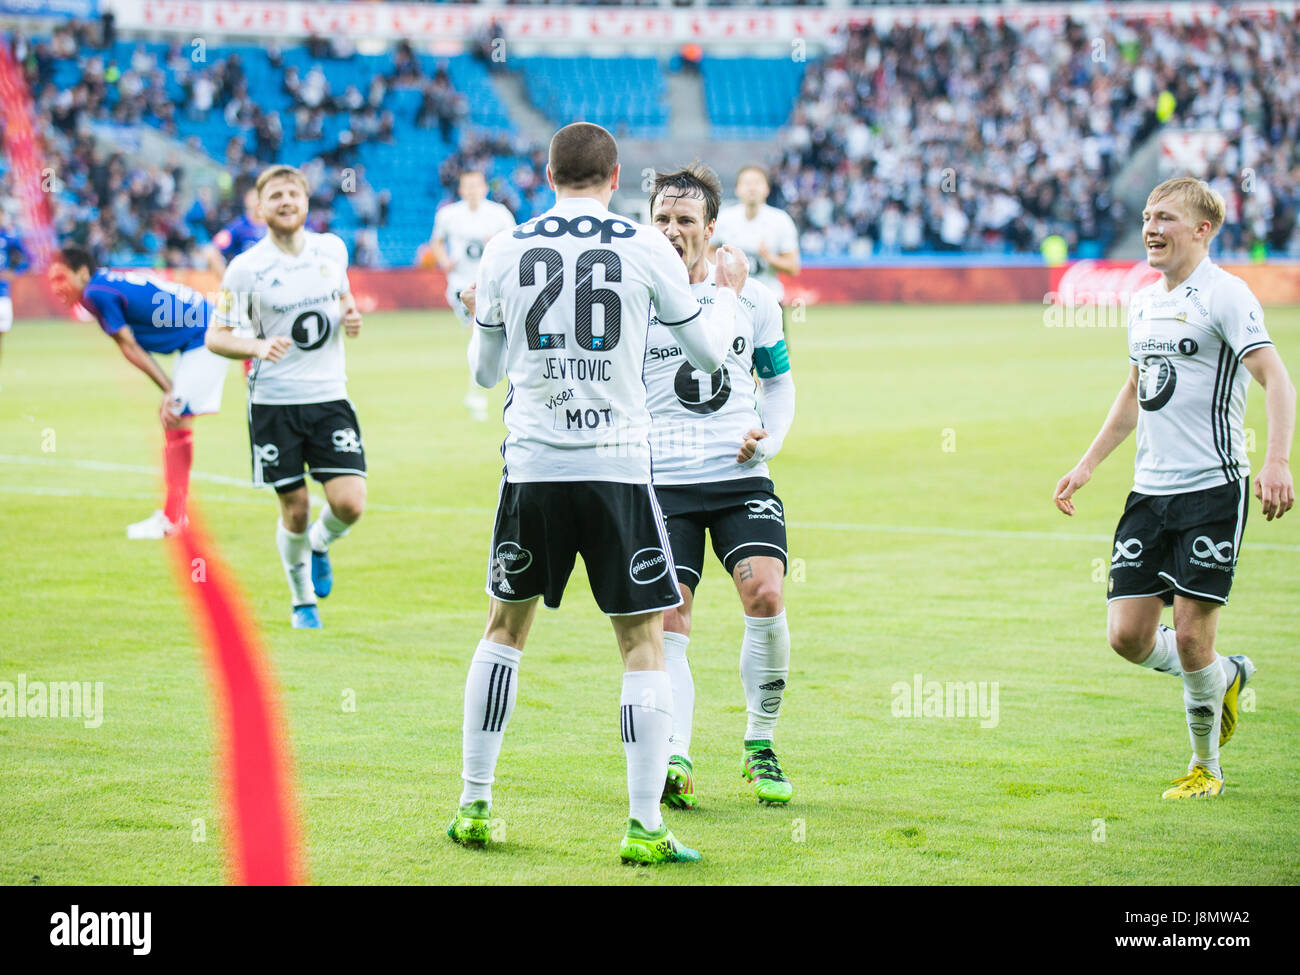 Milan Jevtovic Of Rosenborg Celebrates His   Goal With His Team Colleages During The Eliteserien Mathc Between Valerenga And Rosenborg At Ullevaal